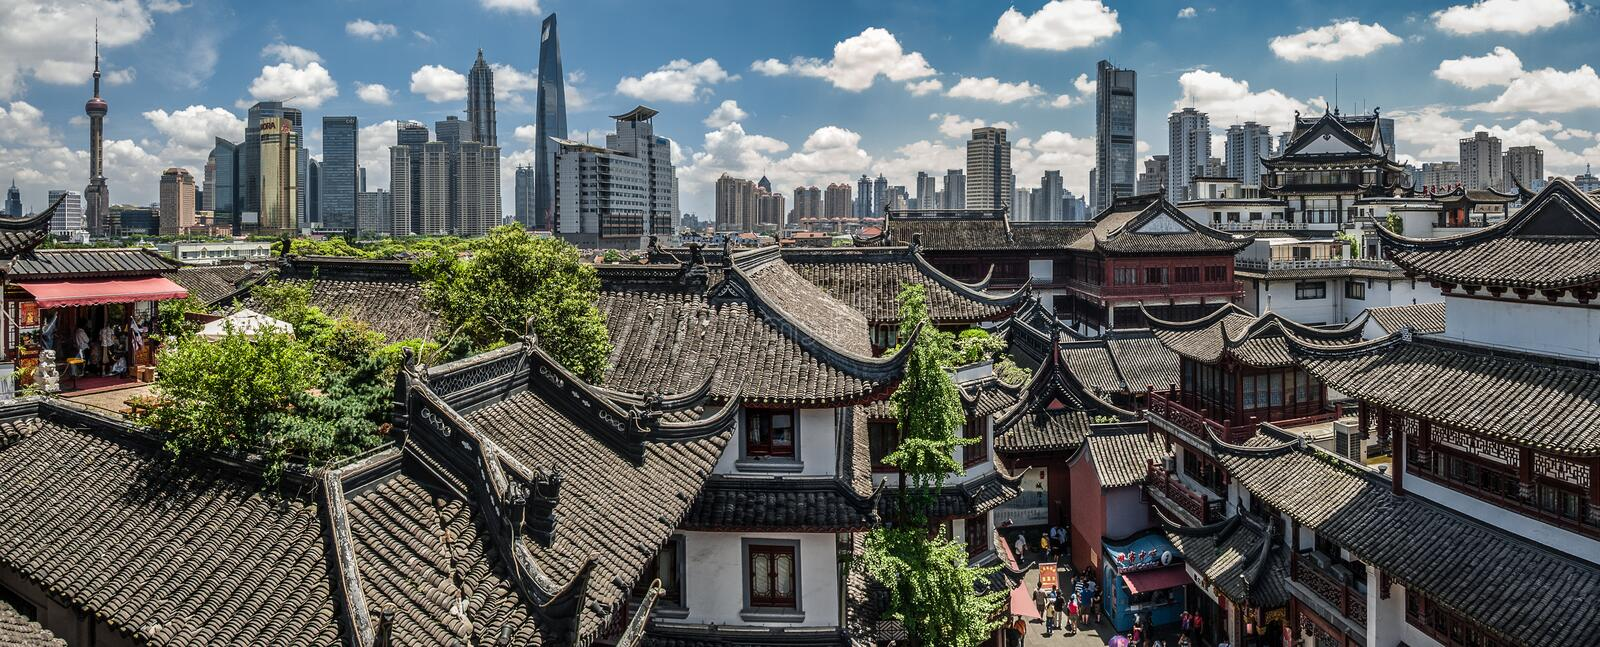 shanghai yuyuan garden and pudong skyline royalty free stock photos